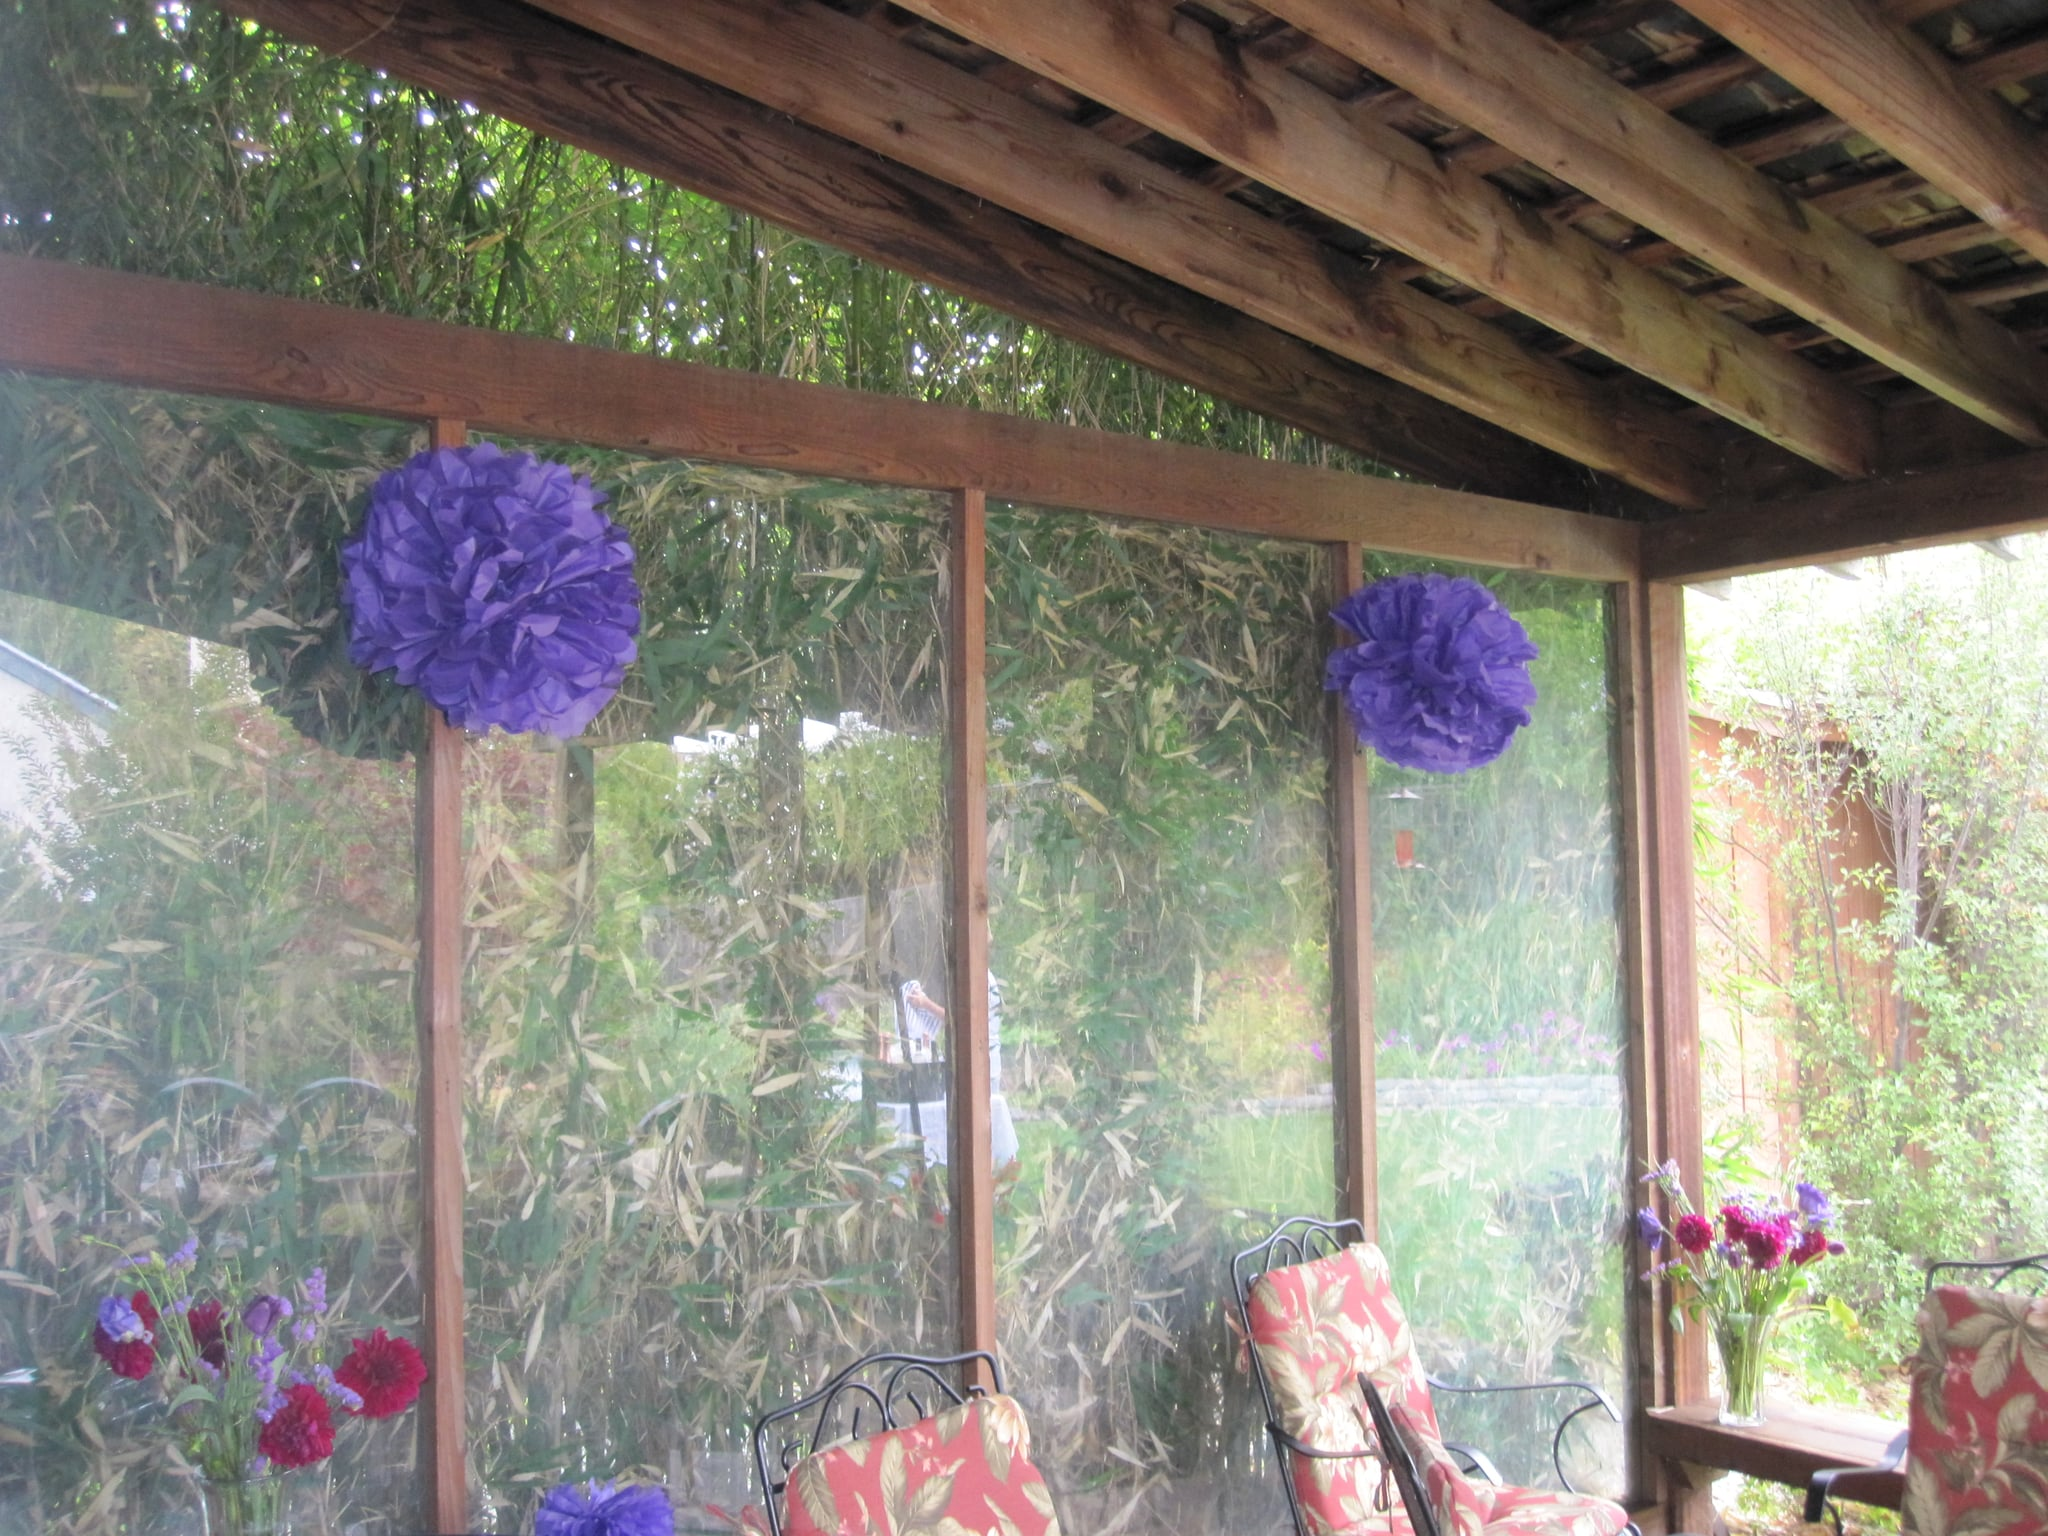 I love the way tissue paper dahilas look. I followed this easy how-to, but instead of wrapping the flowers around napkins, I hung them decoratively around the patio.